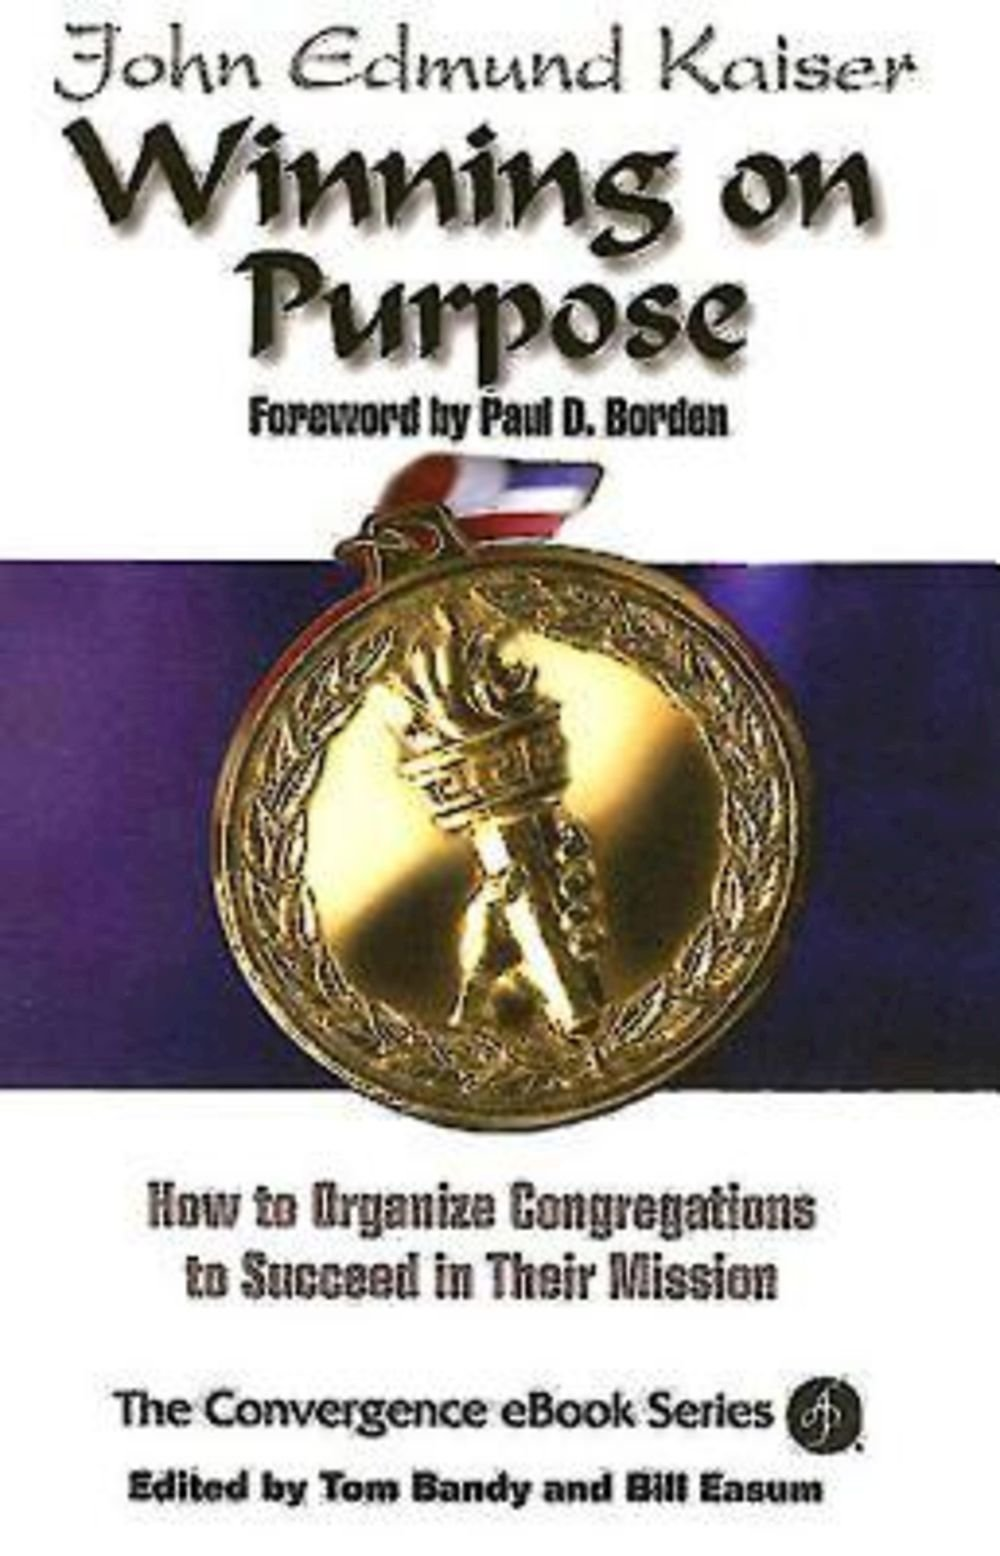 Winning Purpose Organize Congregations Convergence product image